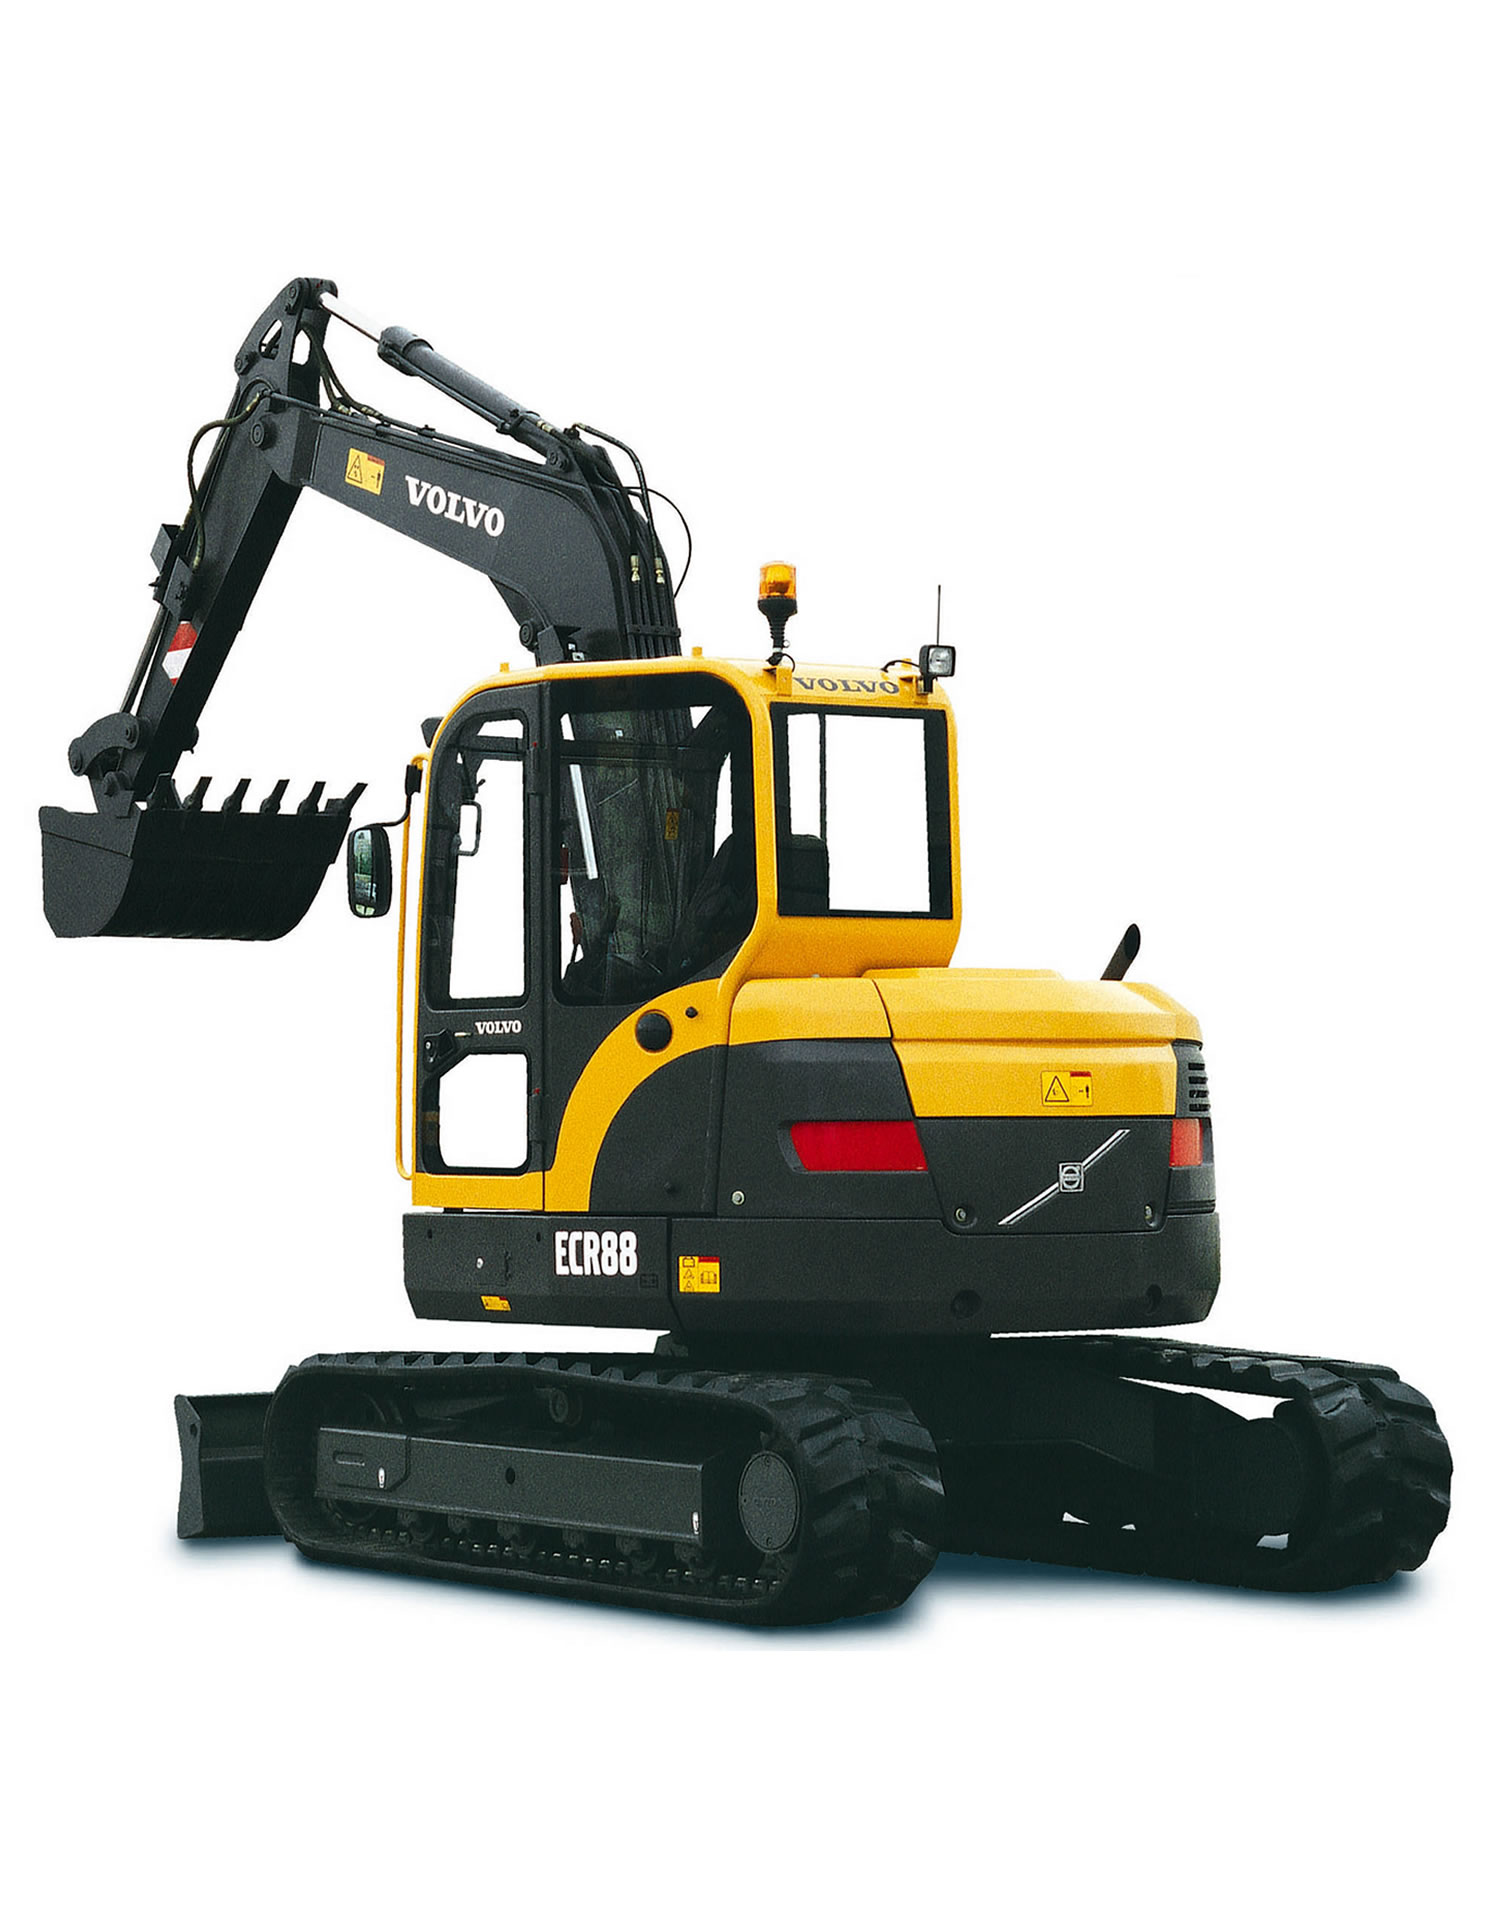 90 Ton Mini Excavator Plant Tool Access and SelfDrive Vehicle